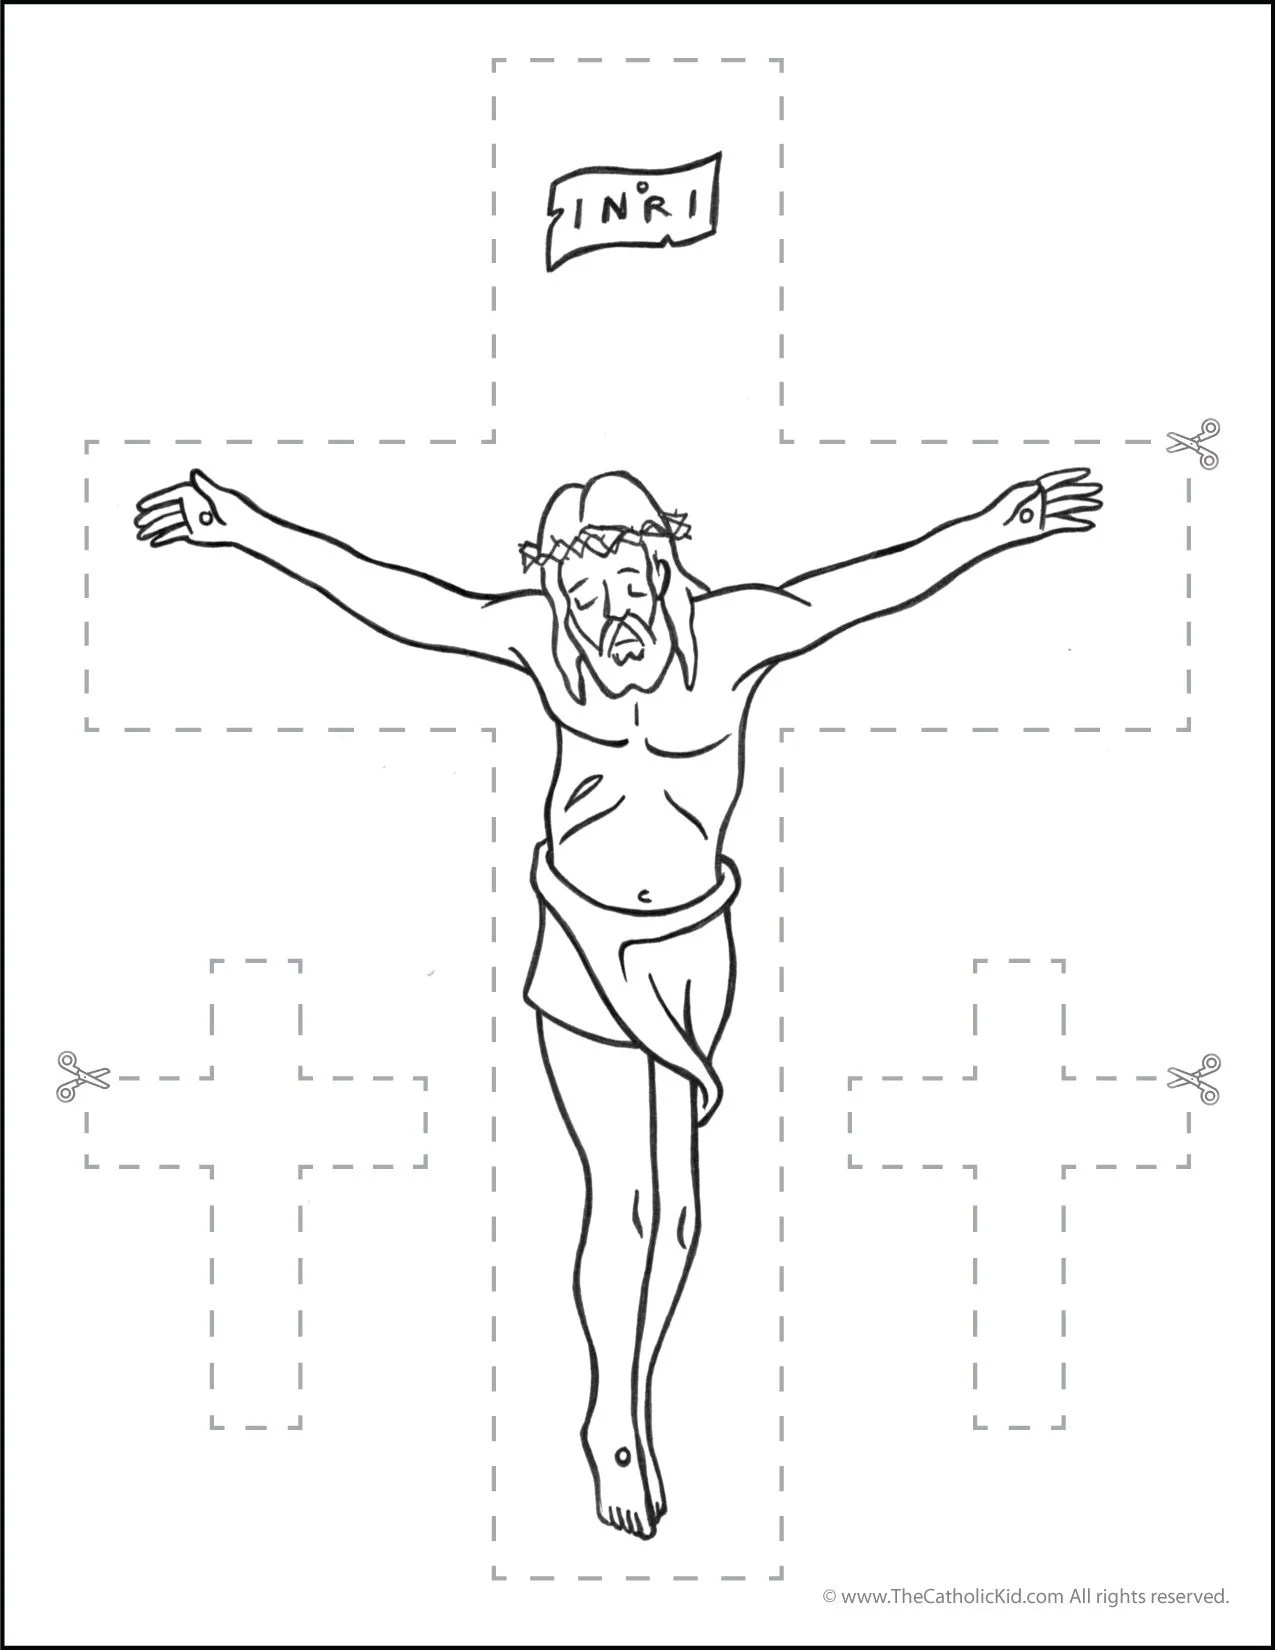 Catholic Scissor Simple Practice Cutting Worksheet